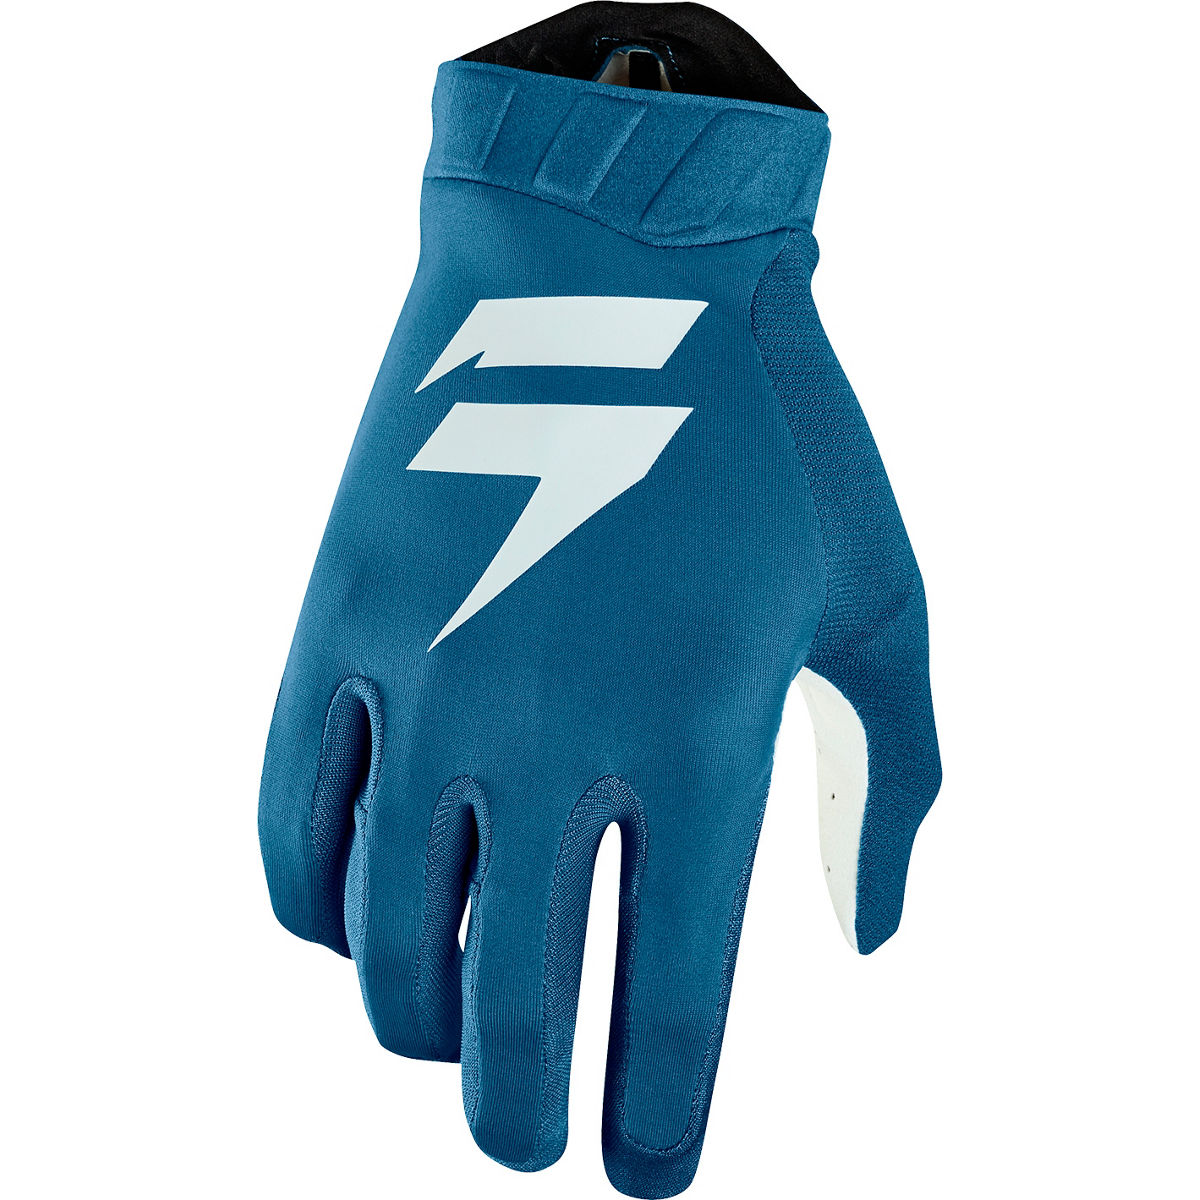 21885-025 2020 Shift MX Black Label Air Gloves Blue White Motocross Enduro Handschoenen BMX Gants Handschuhe